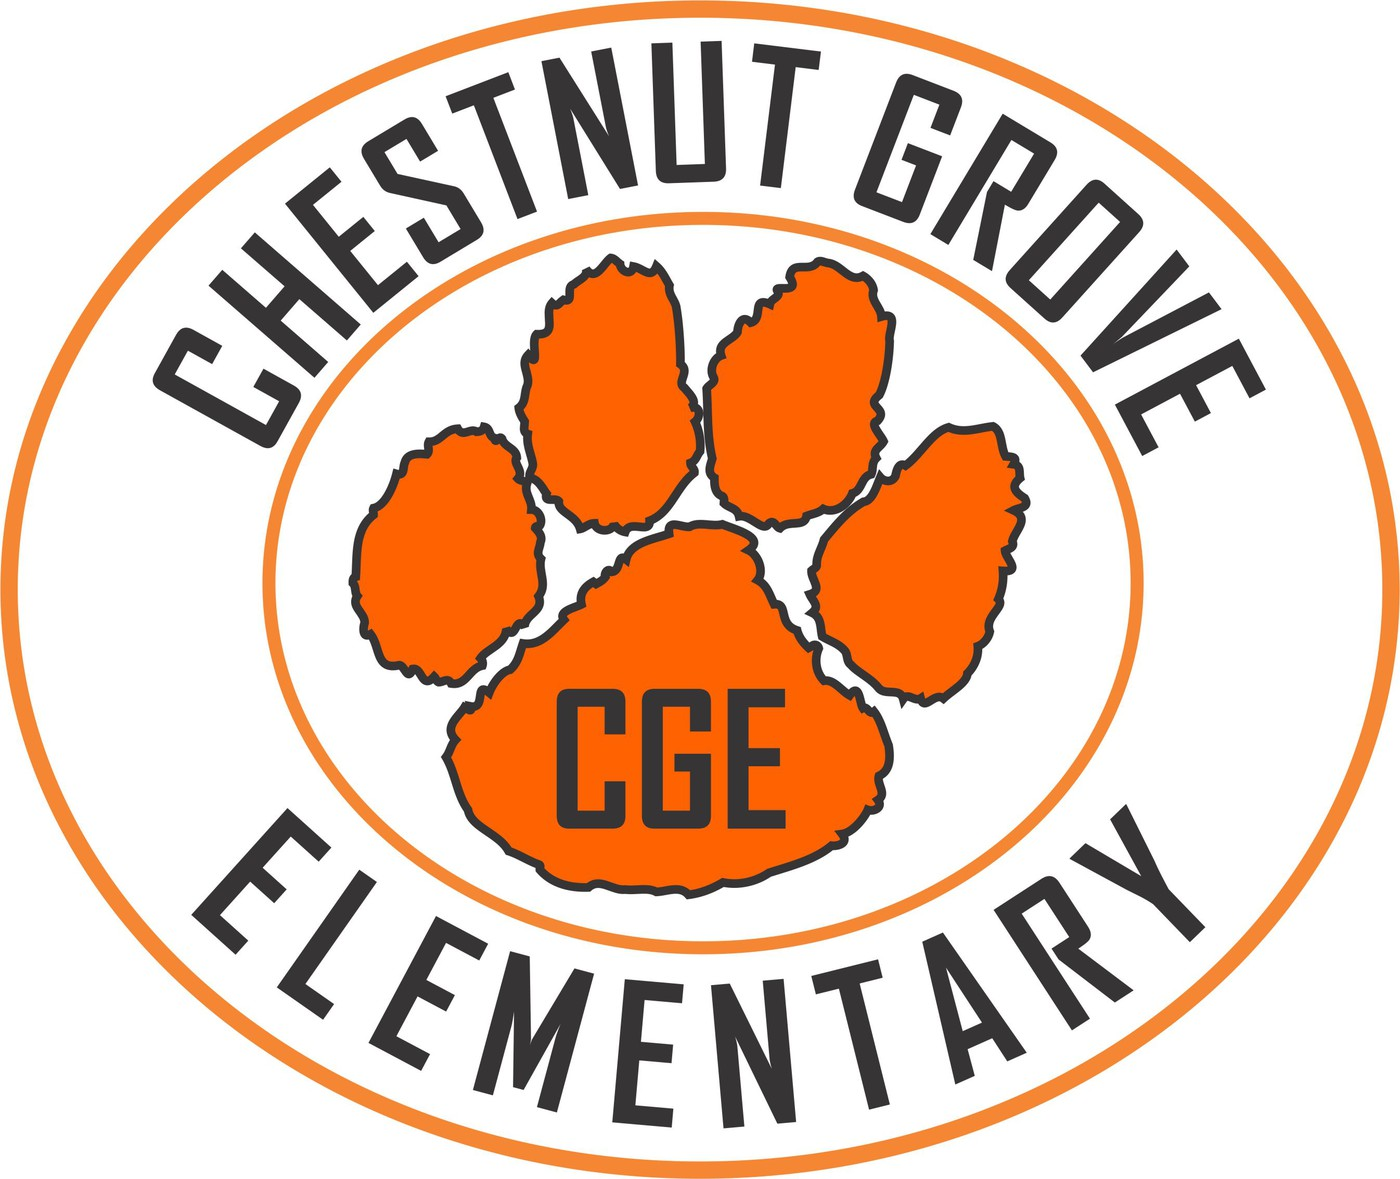 Chestnut Elementary: Smore Newsletters For Education